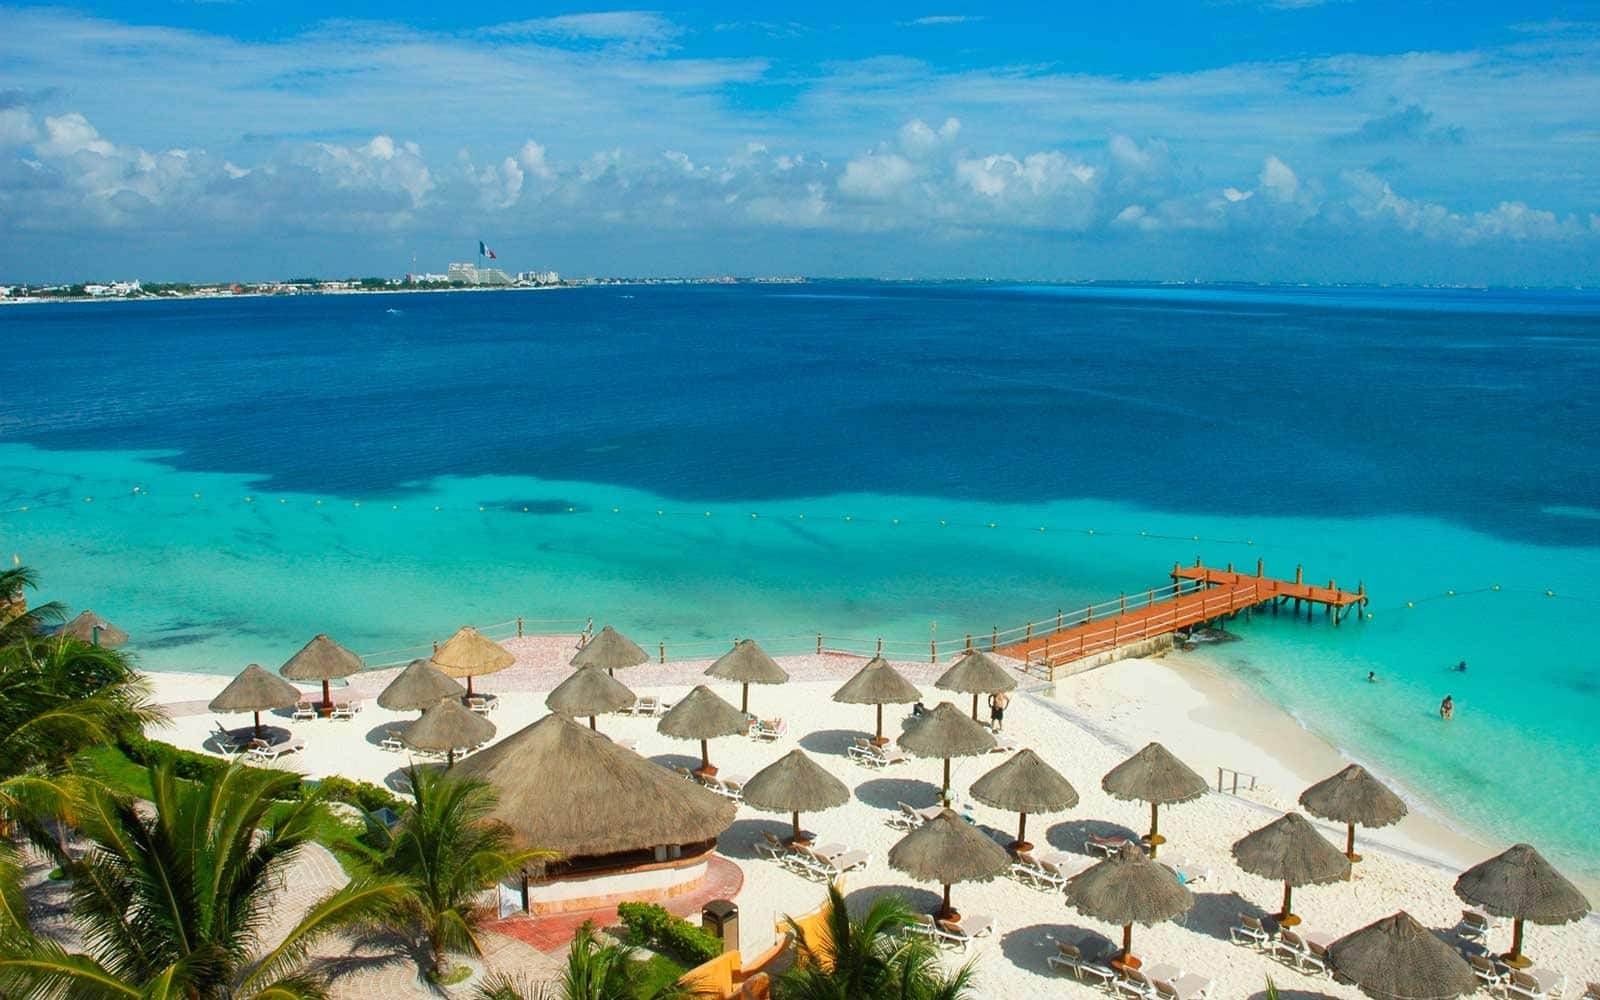 Detroit to Cancun Mexico $173-176 RT Airfares on American Airlines (Flexible Ticket Travel August - November 2020)